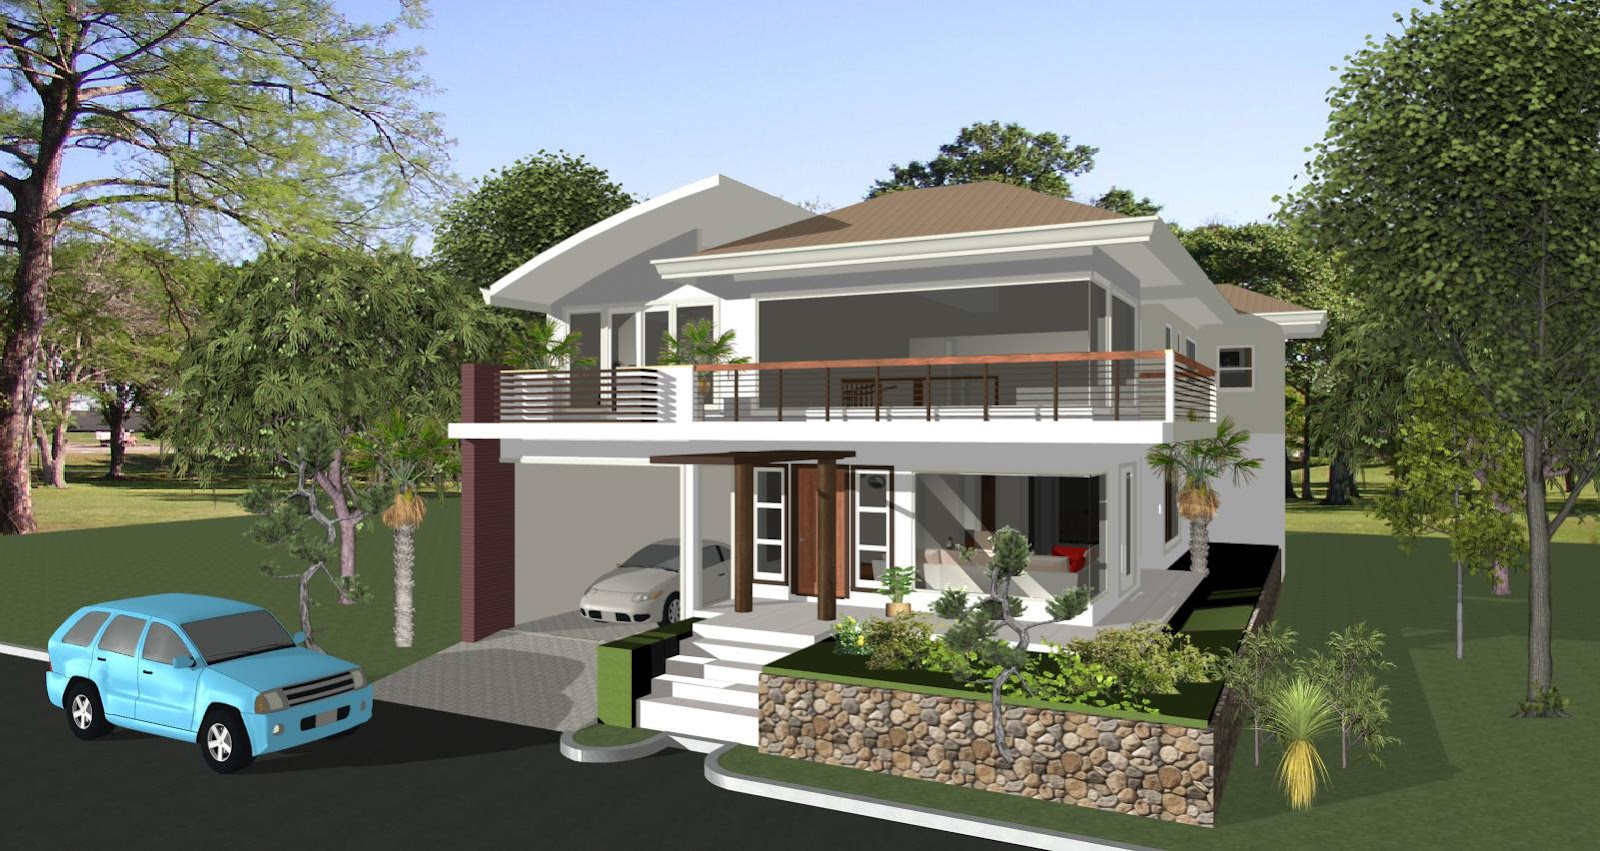 House designs philippines architect bill house plans for Architectural home designs